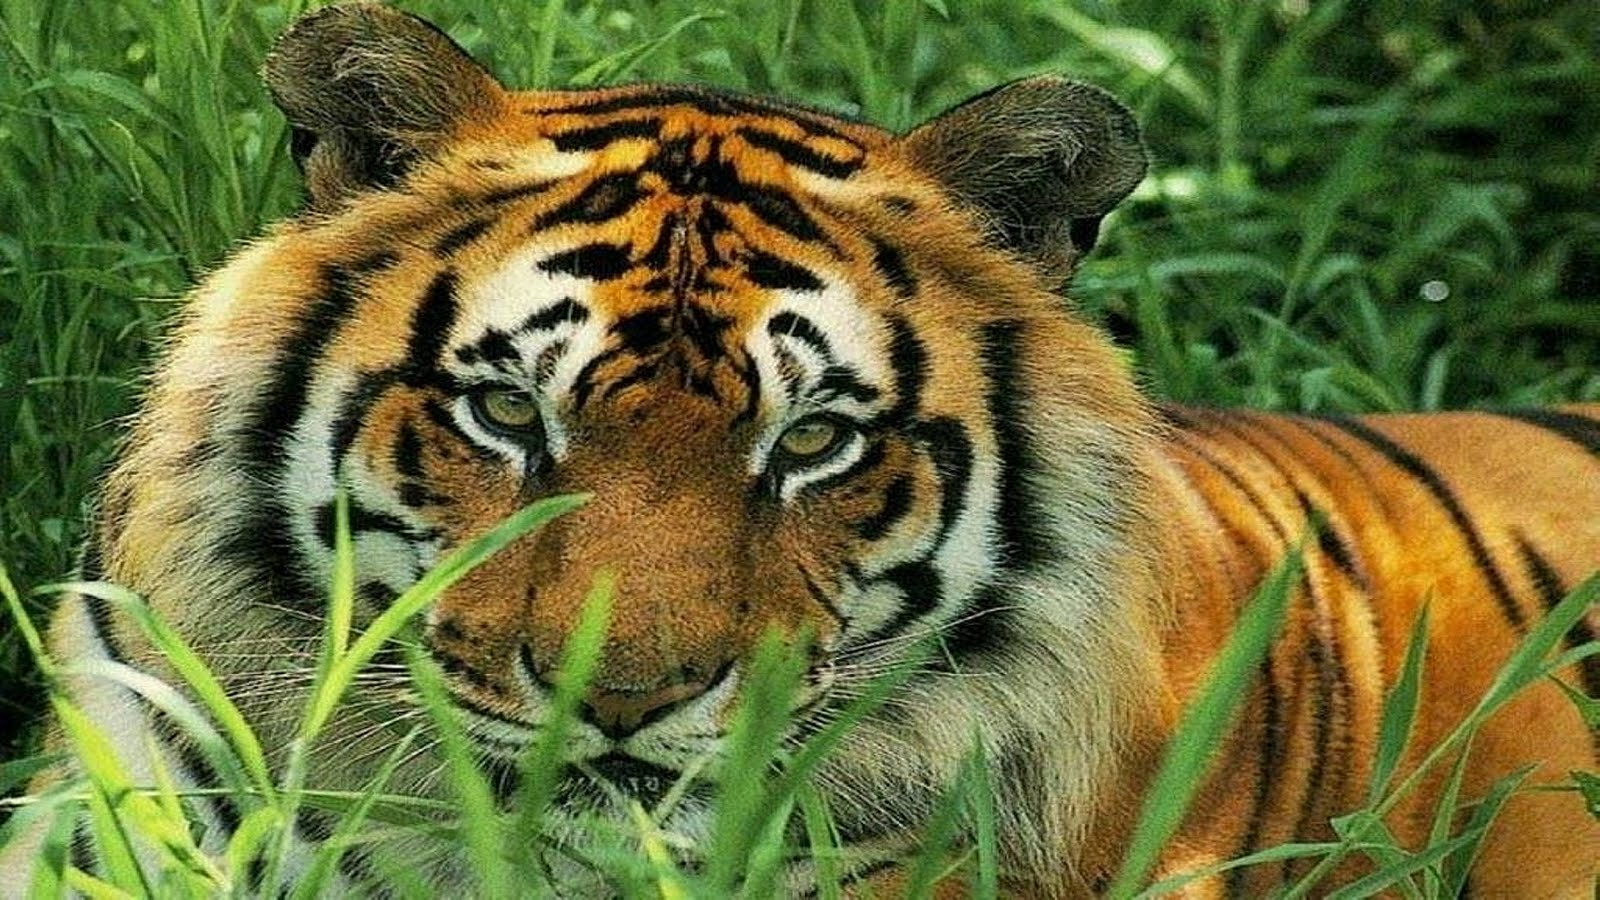 ANIMALS OF PLANET EARTH: BIG CATS OF THE WORLD